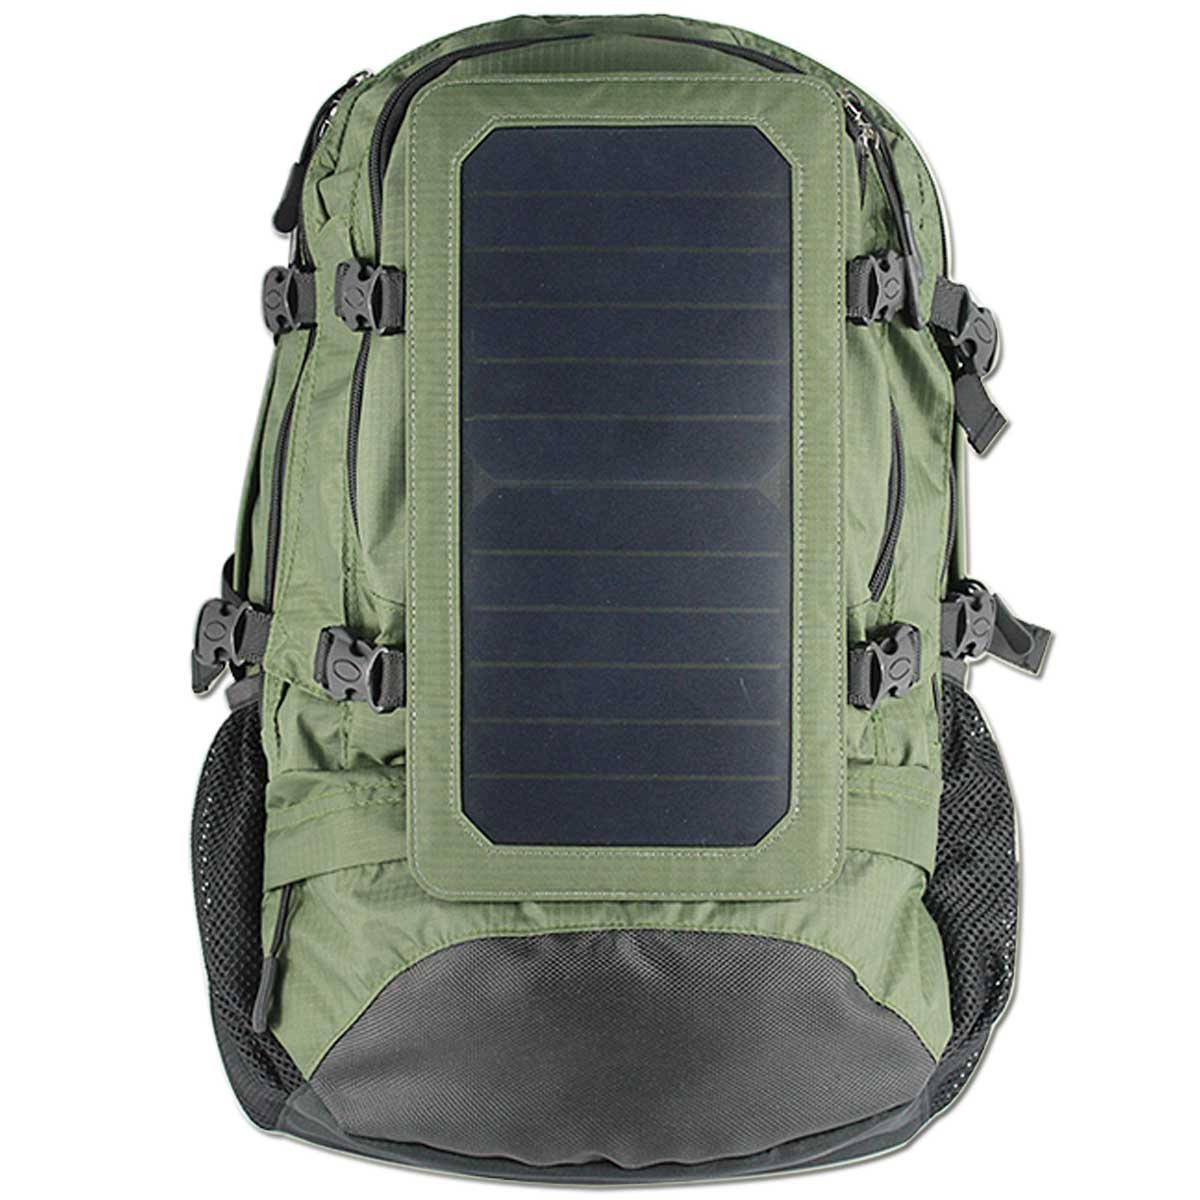 Renepv Solar Backpack, 7 Watt Solar Panel Charge for Smart Cell Phones and Tablets, GPS, eReaders, Bluetooth Speakers, Gopro Cameras